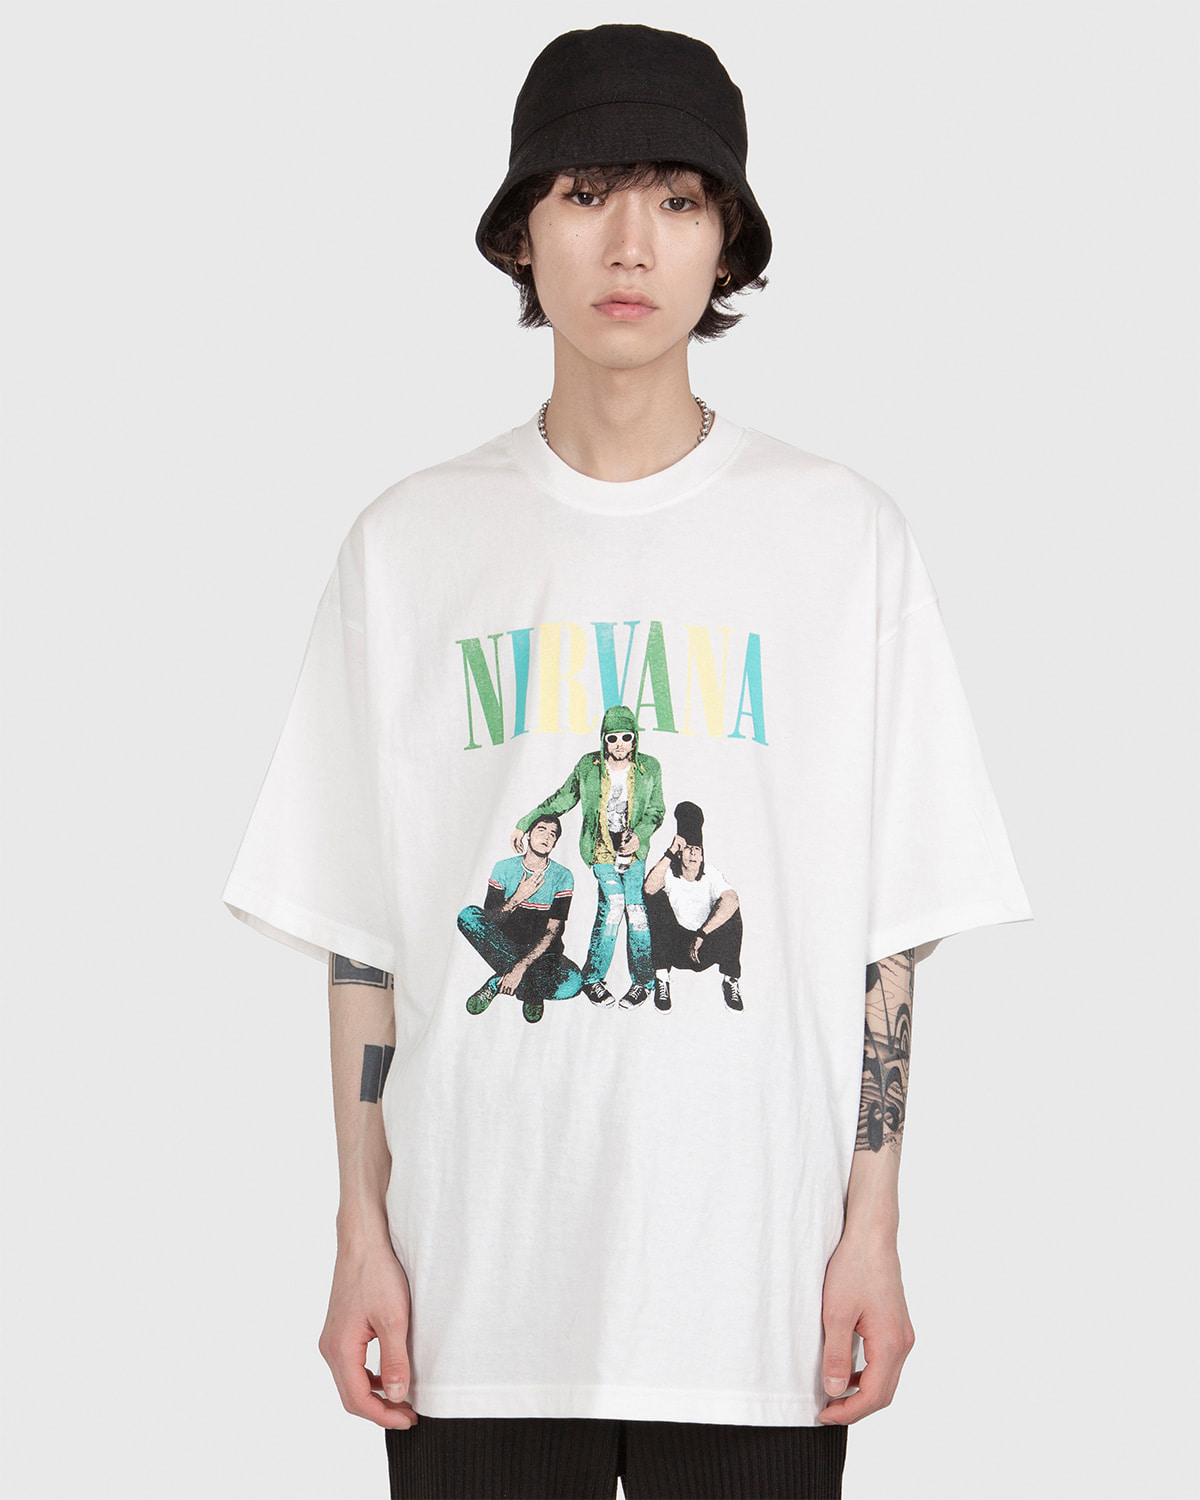 raucohouse-NIRVANA PEOPLE 1/2 T - RAUCO HOUSE♡韓國男裝上衣